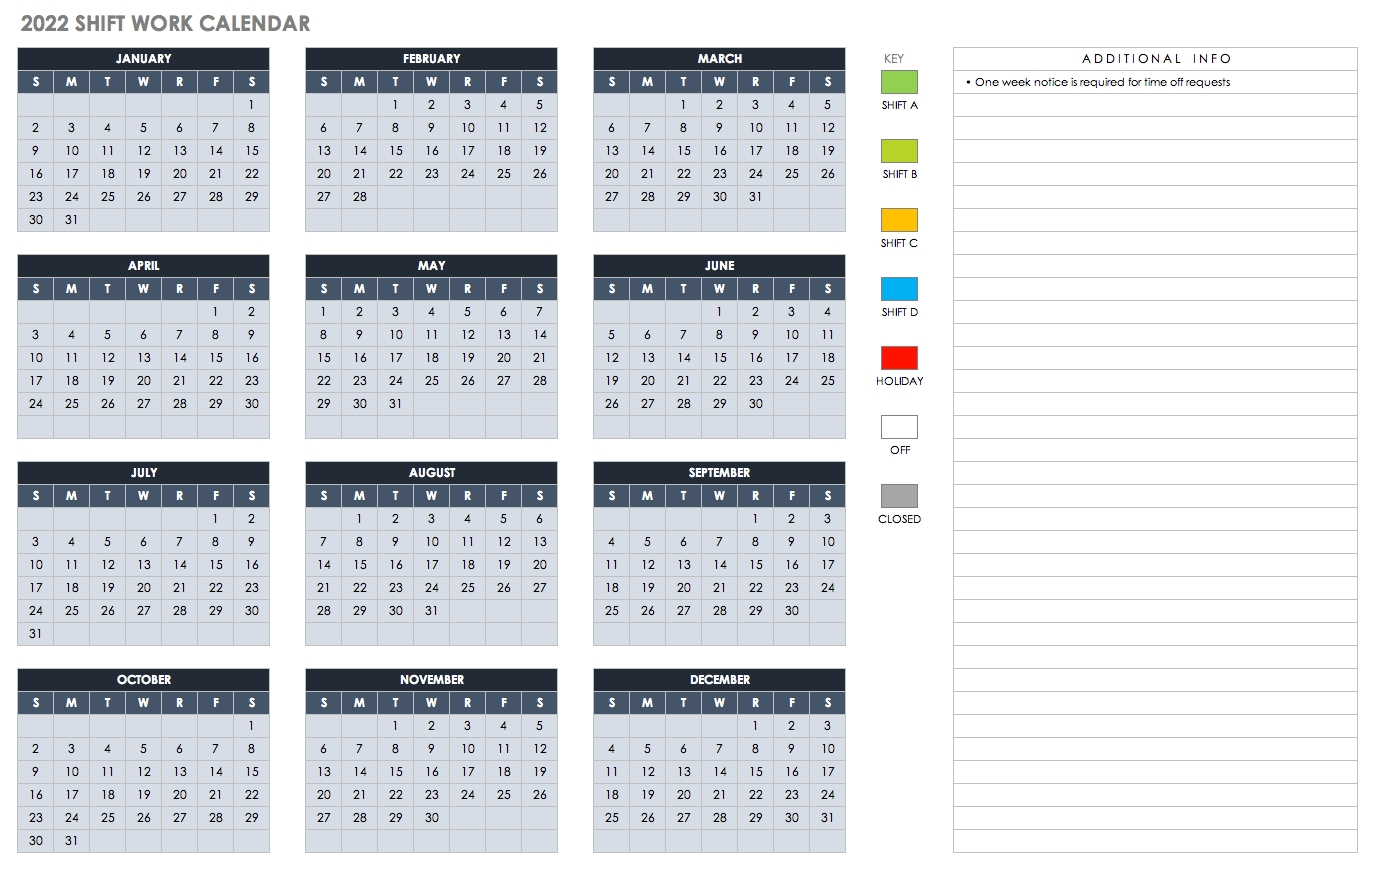 Free Blank Calendar Templates - Smartsheet for Year Calendar 2020 With Space To Write Int